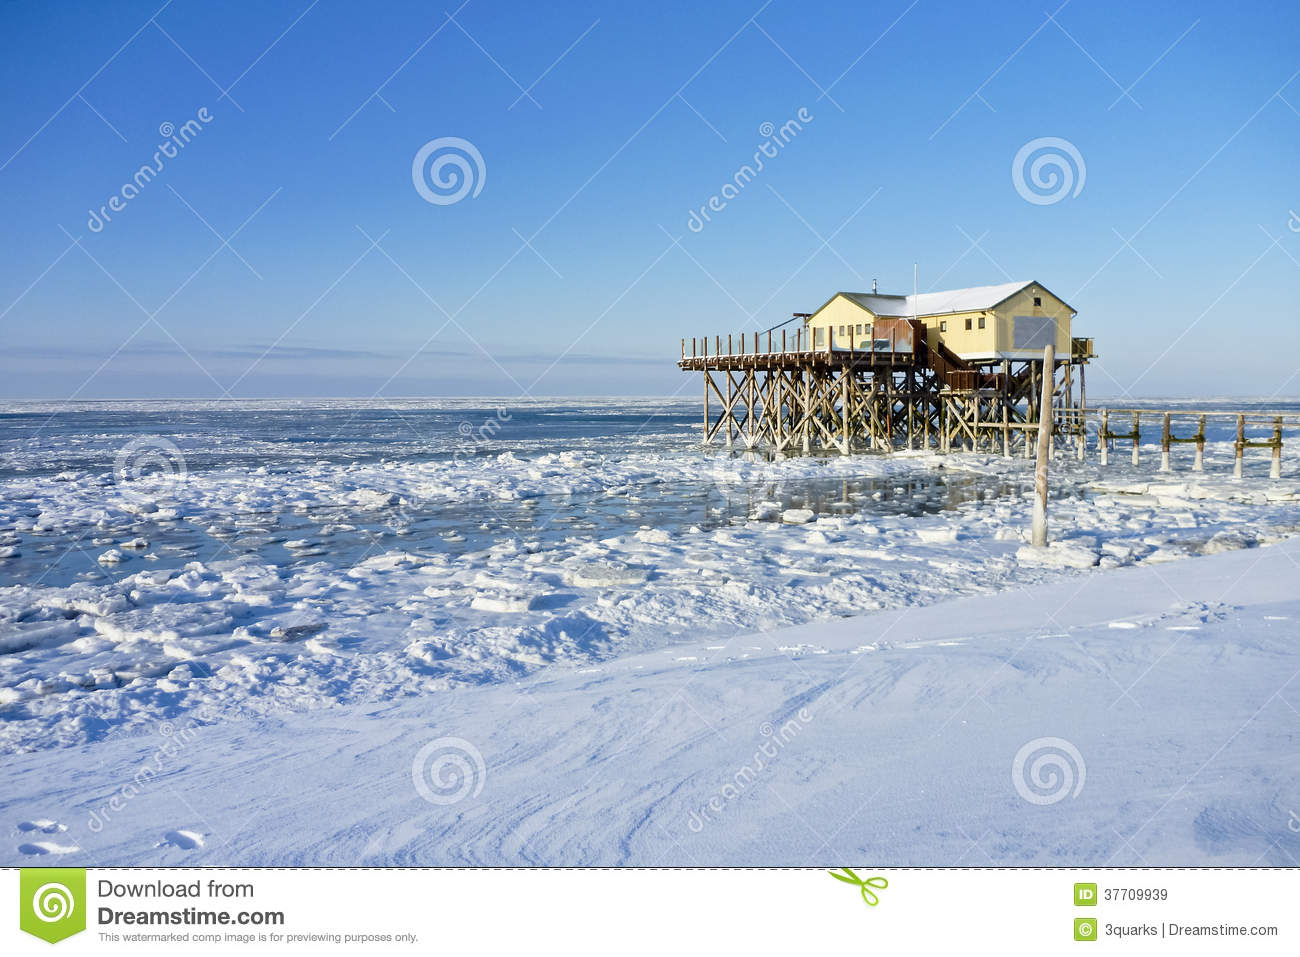 strand von st peter ording im winter stockbild bild von. Black Bedroom Furniture Sets. Home Design Ideas